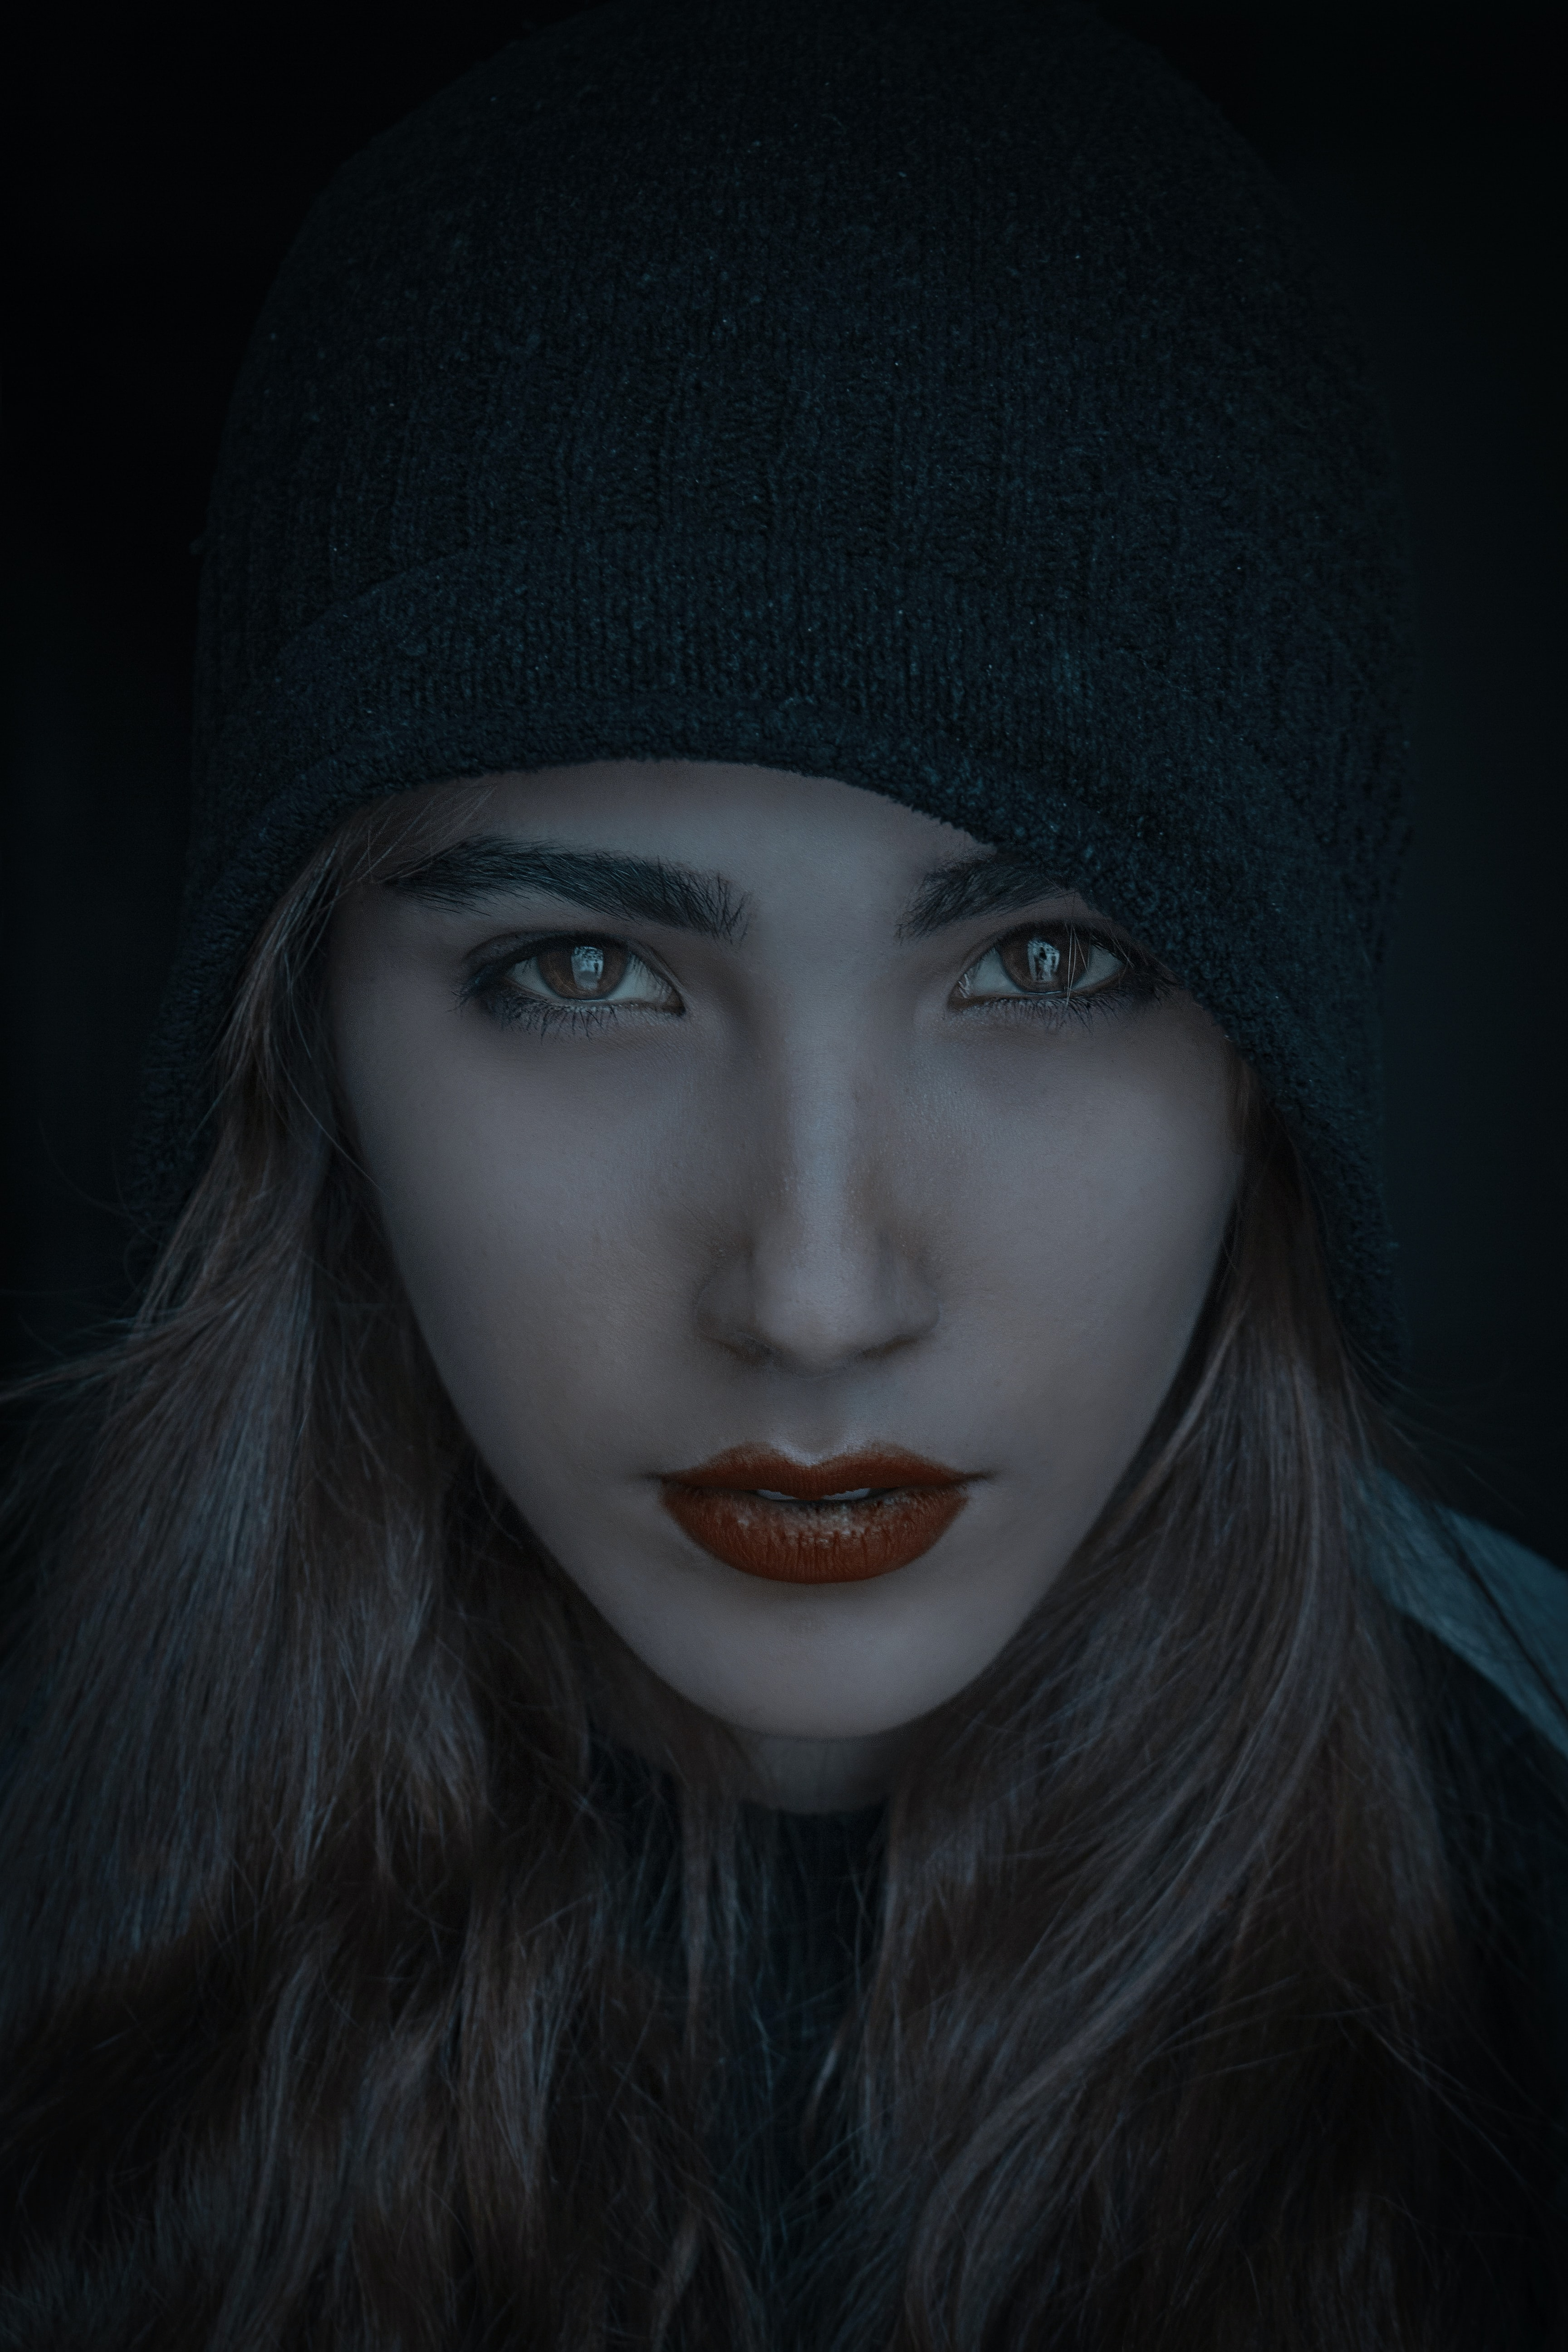 woman wearing black beanie